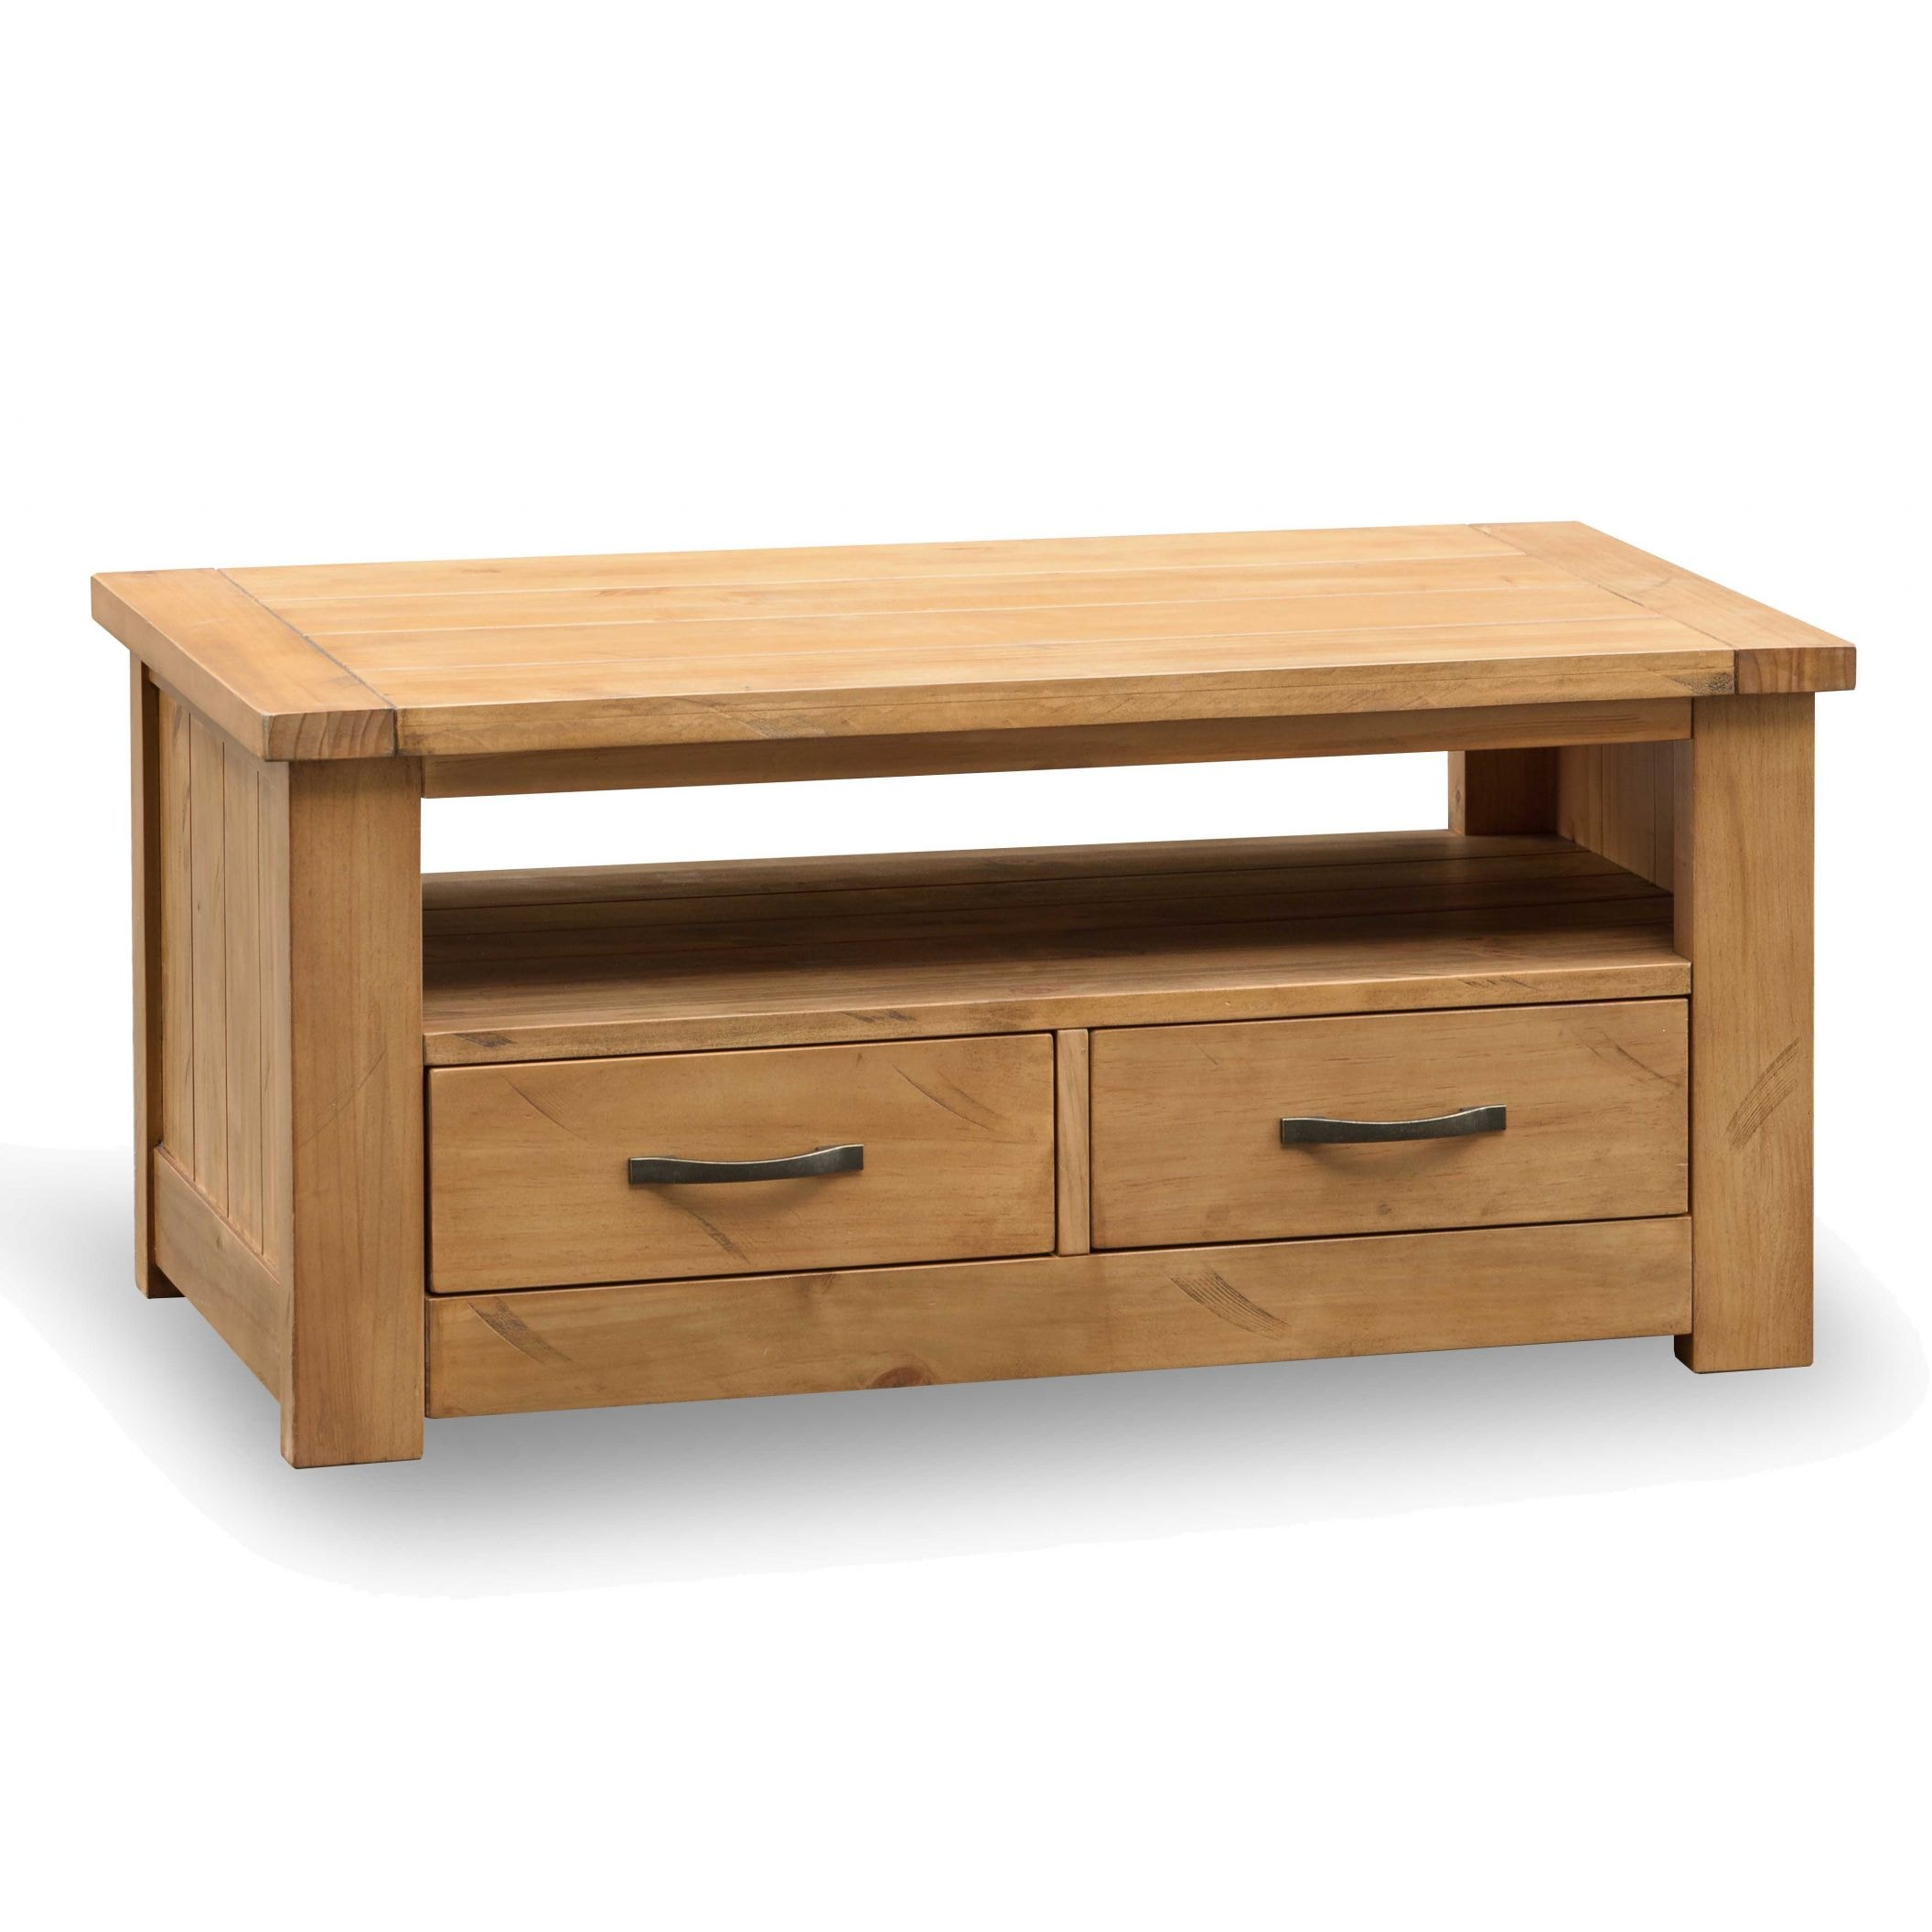 Boden pine coffee table